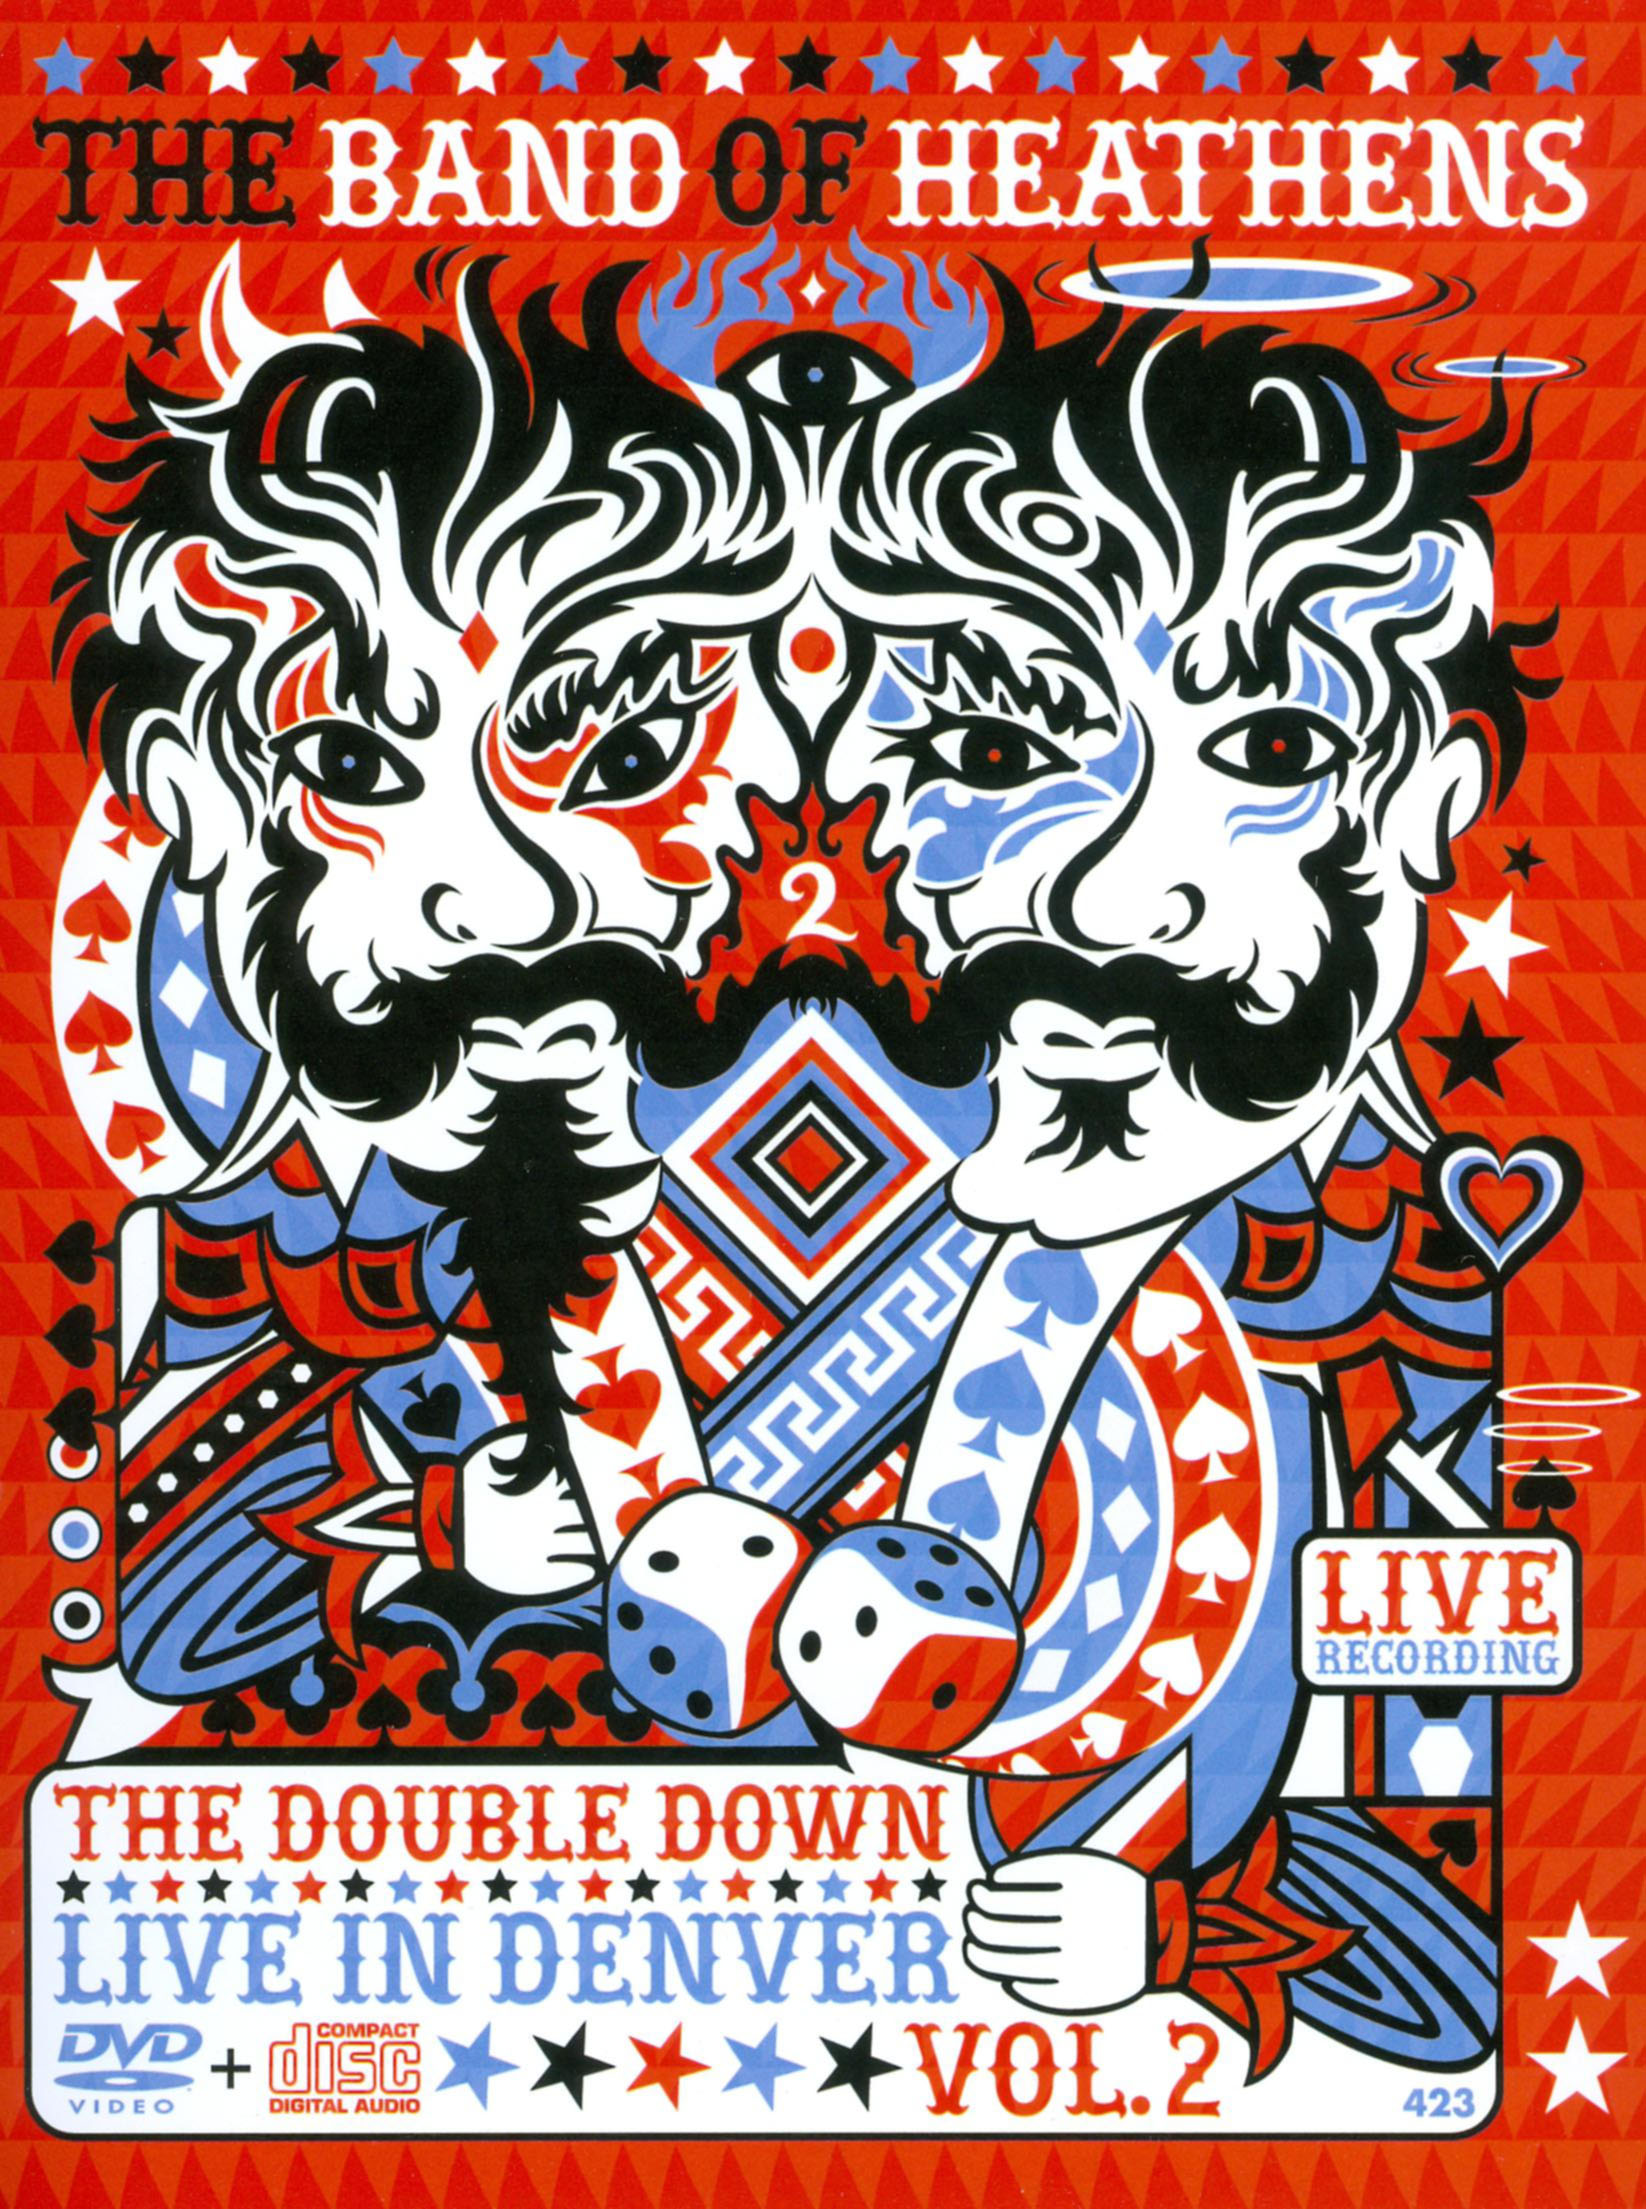 The Band of Heathens: The Double Down - Live in Denver, Vol. 2